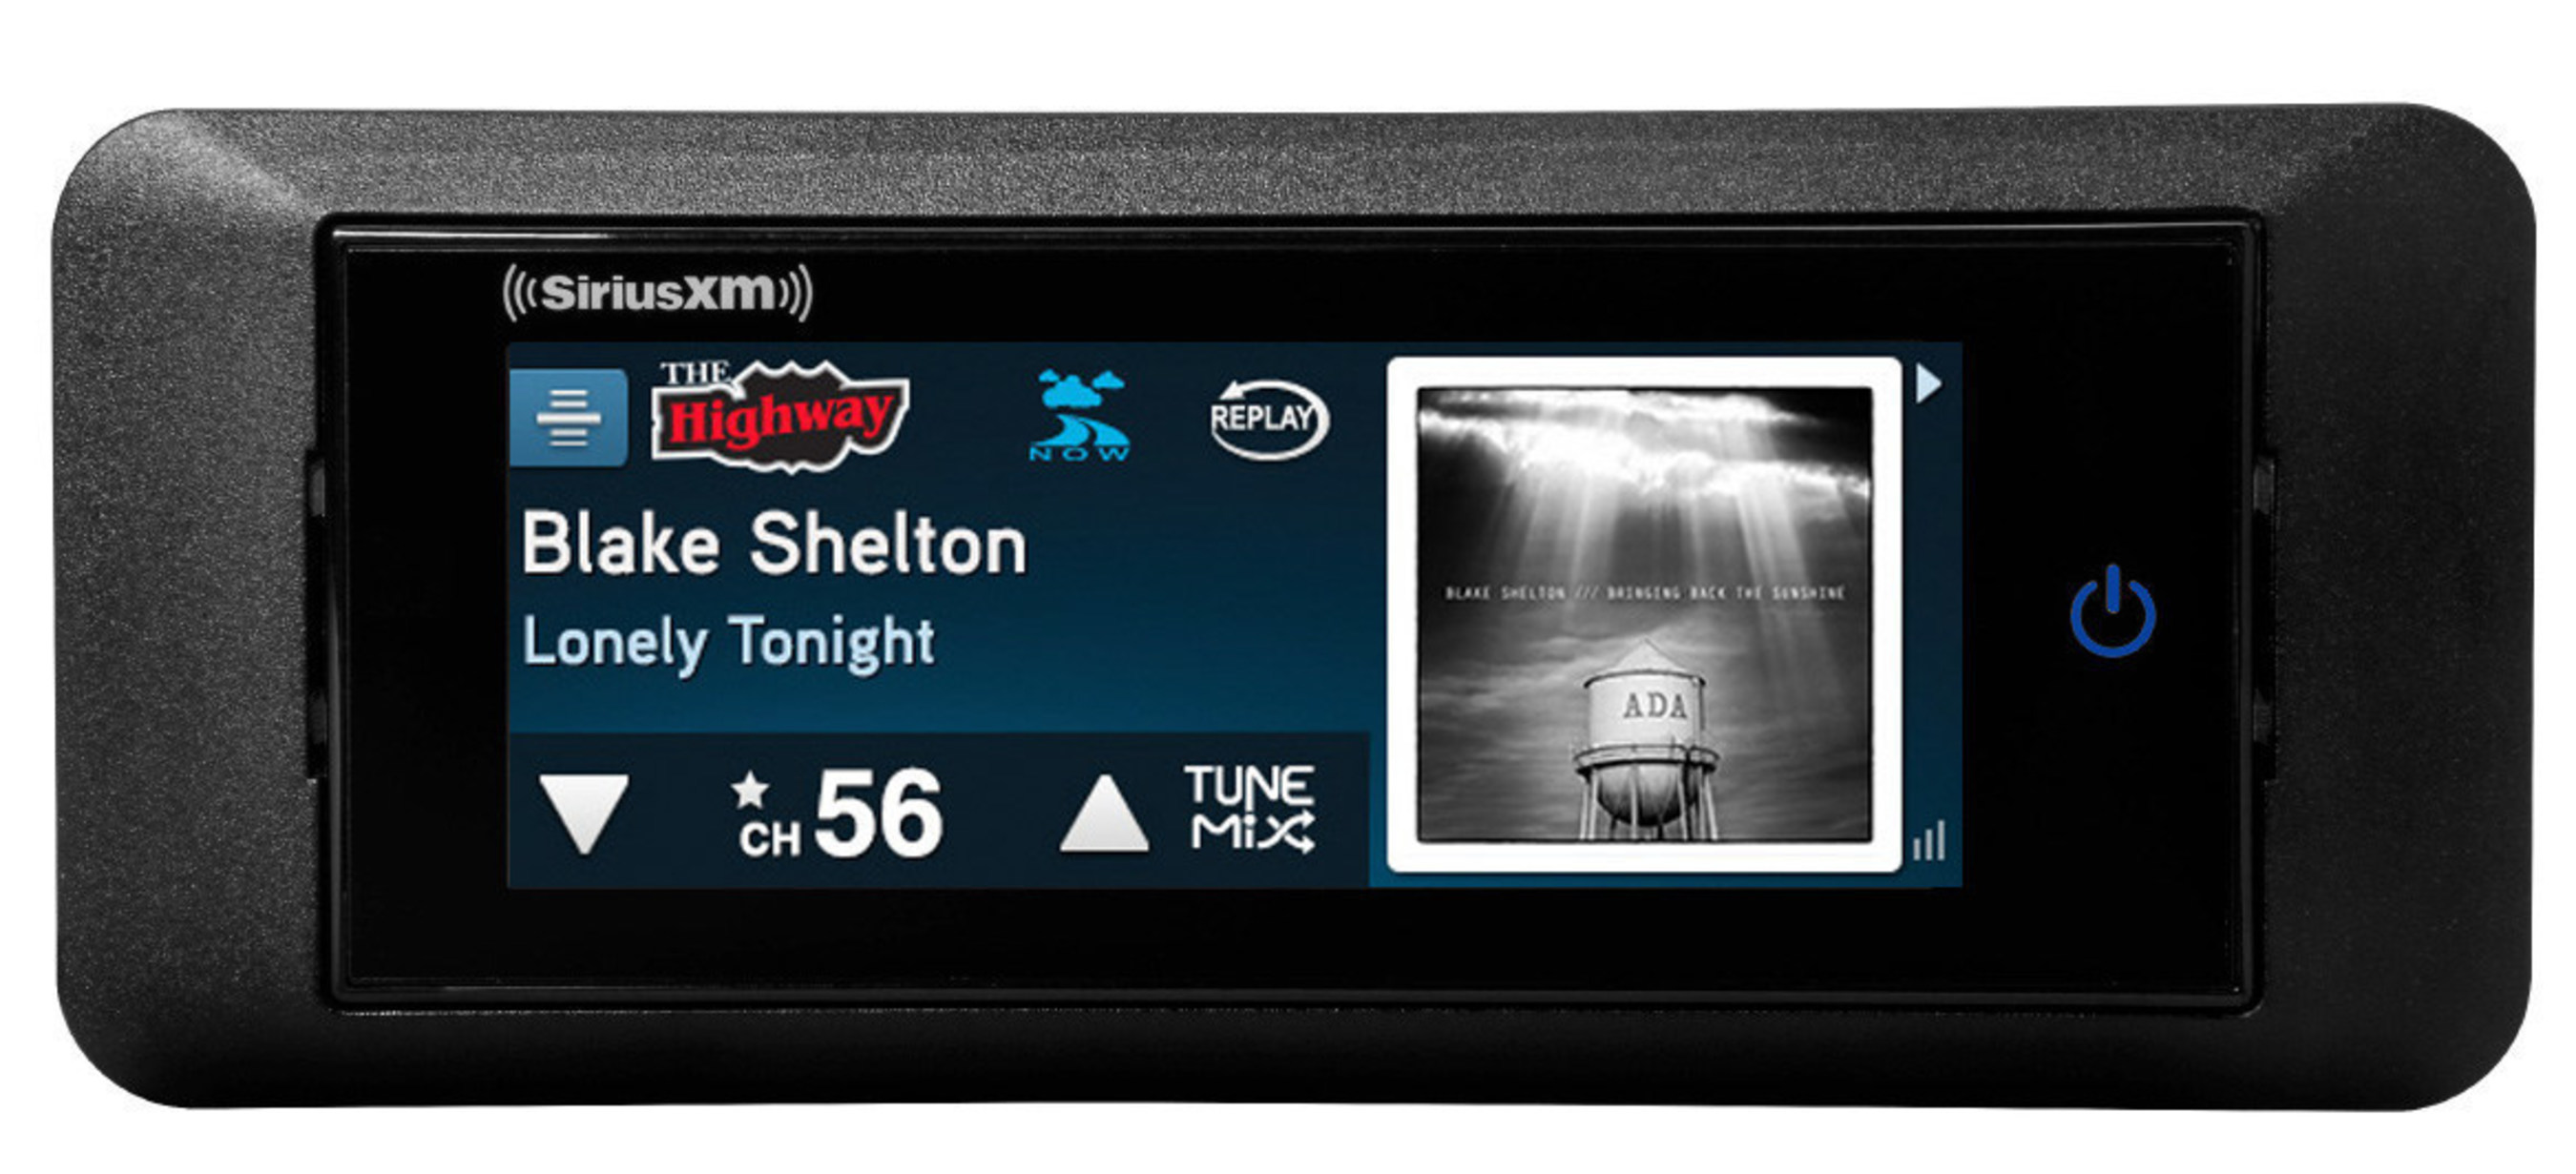 SiriusXM Commander Touch includes a flush mount kit to allow for custom integration into the vehicle